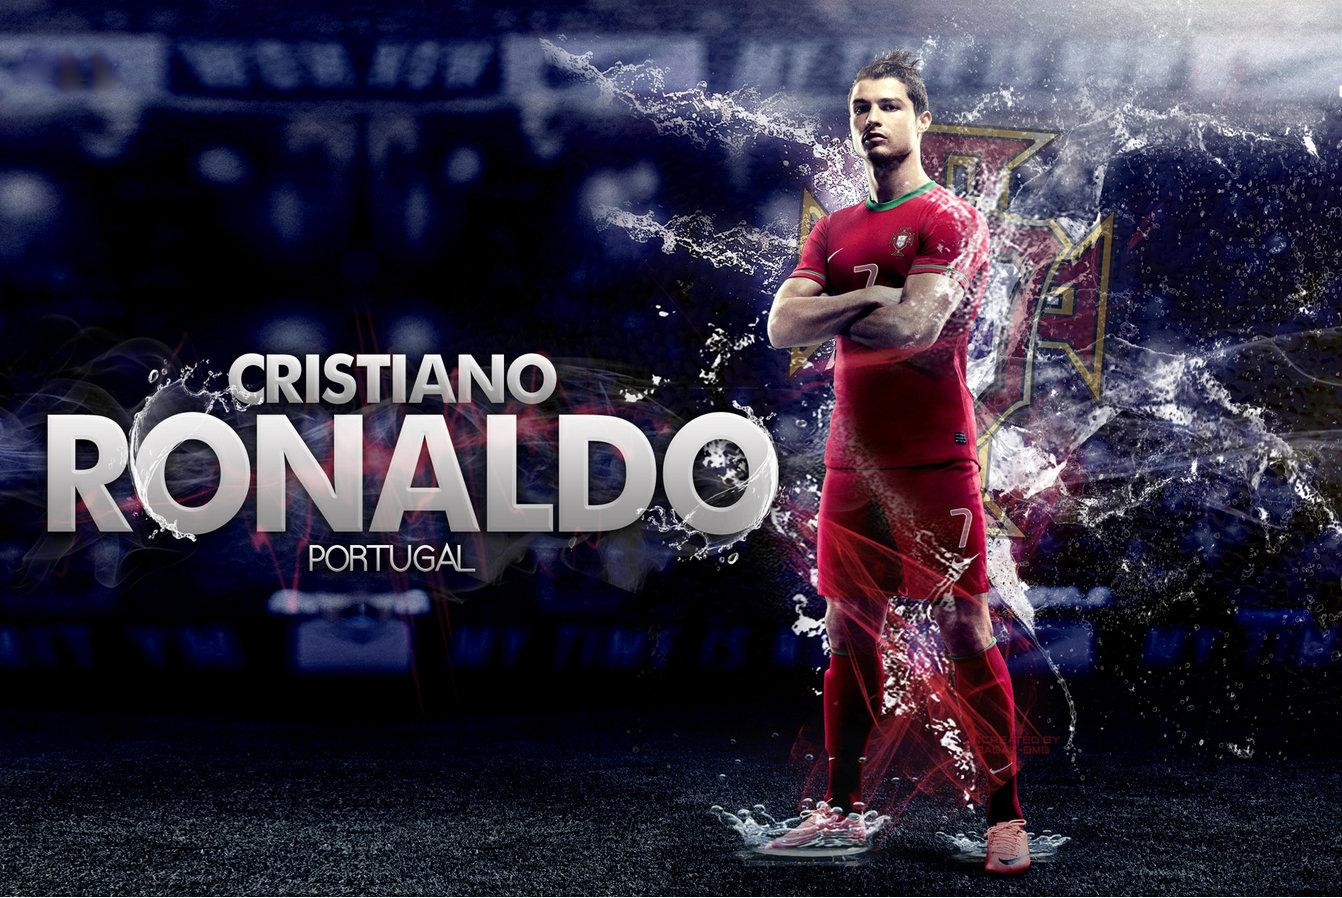 Cristiano Ronaldo 2013 HD Wallpapers Gallery